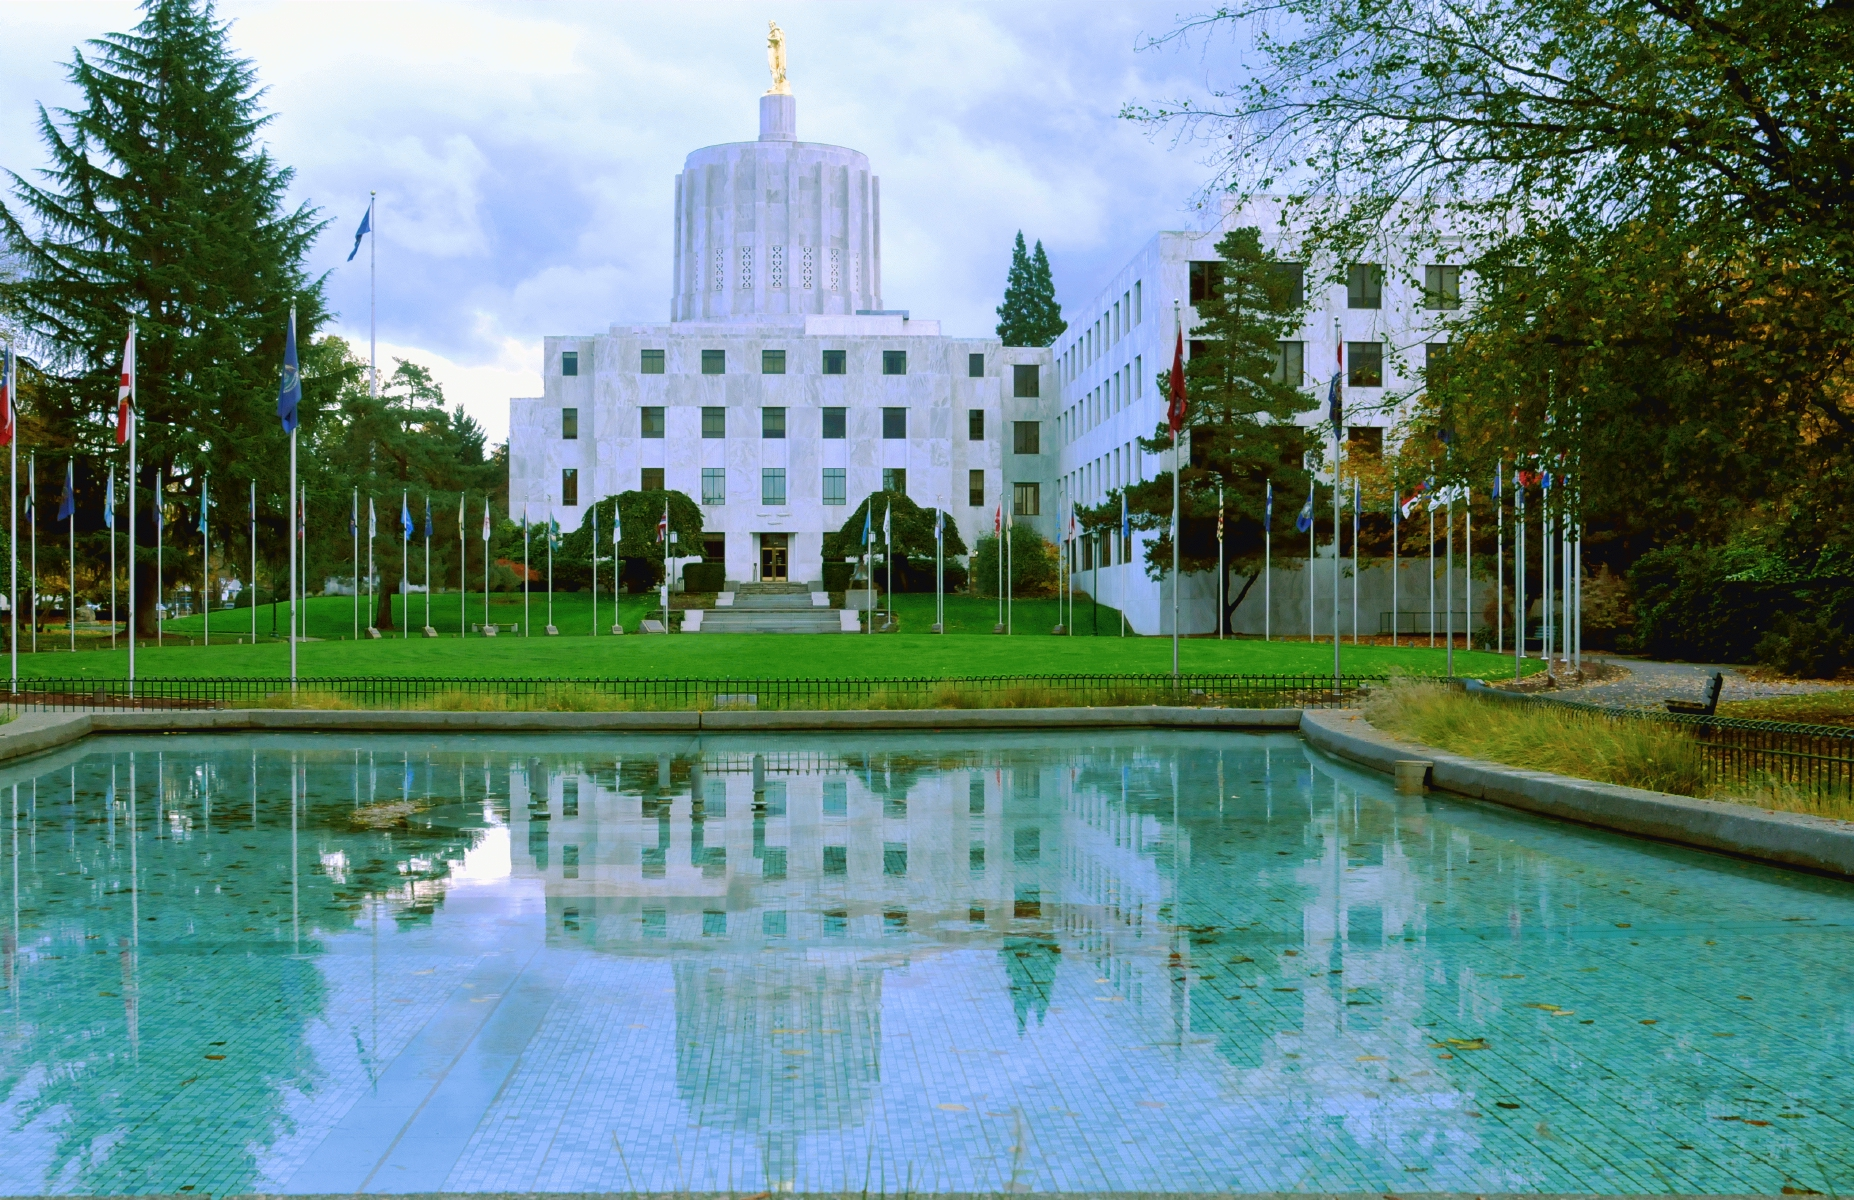 Oregon_State_Capital_20151108_154242_C15_5226.jpg